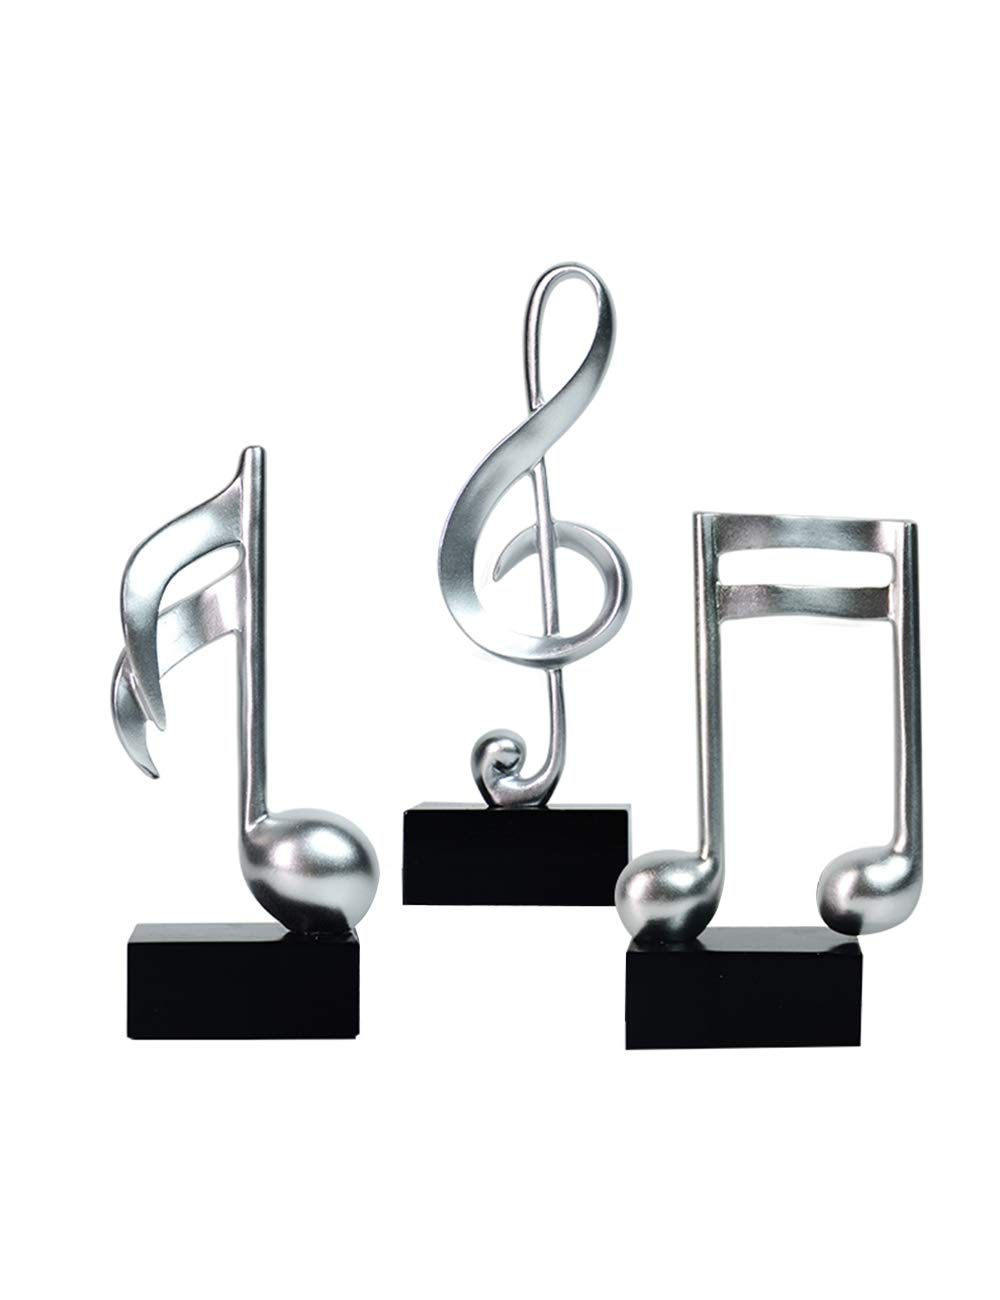 HomeBerry Musical Note Music Note Figurine Statue Sculpture Home Decor Decoration Gift Arts Crafts Hand Painted Polyreisn19cmH Set of 3 Silver